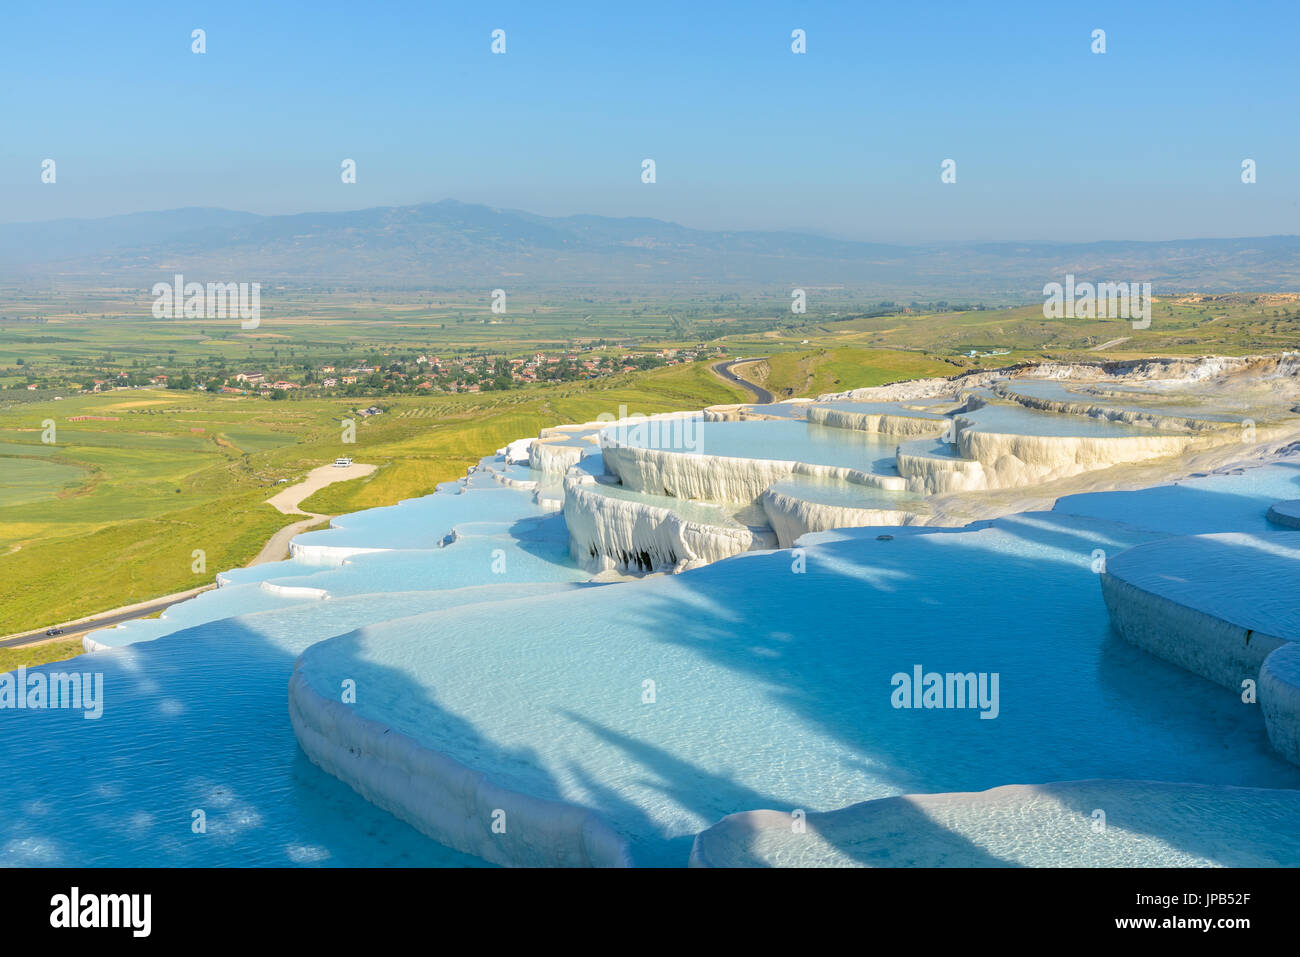 The enchanting pools of Pamukkale in Turkey. Pamukkale contains hot springs and travertines, terraces of carbonate minerals left by the flowing water. - Stock Image